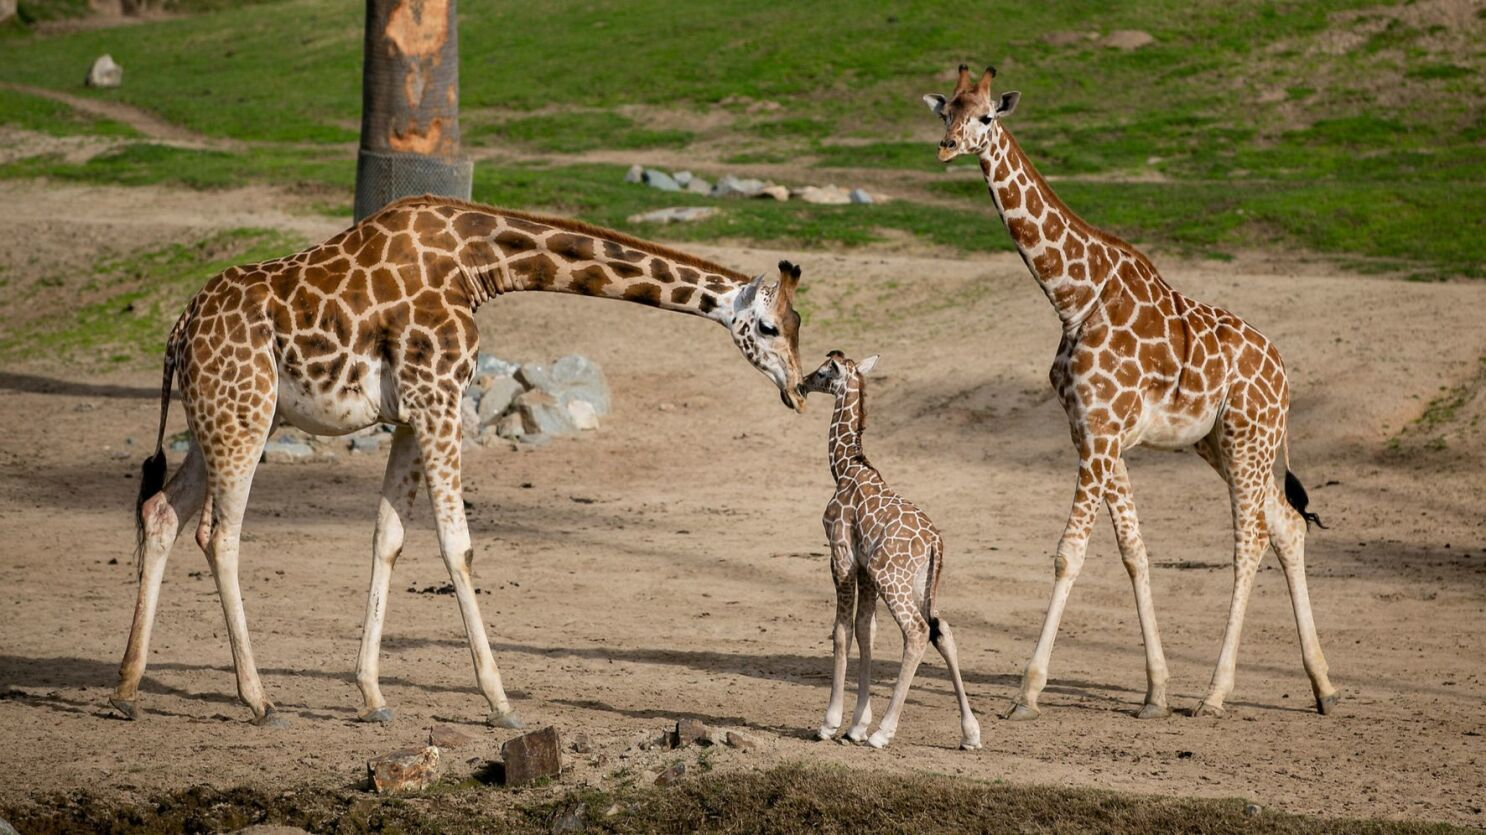 From A Wet And Wobbly Start Newborn Giraffe Joins San Diego Zoo